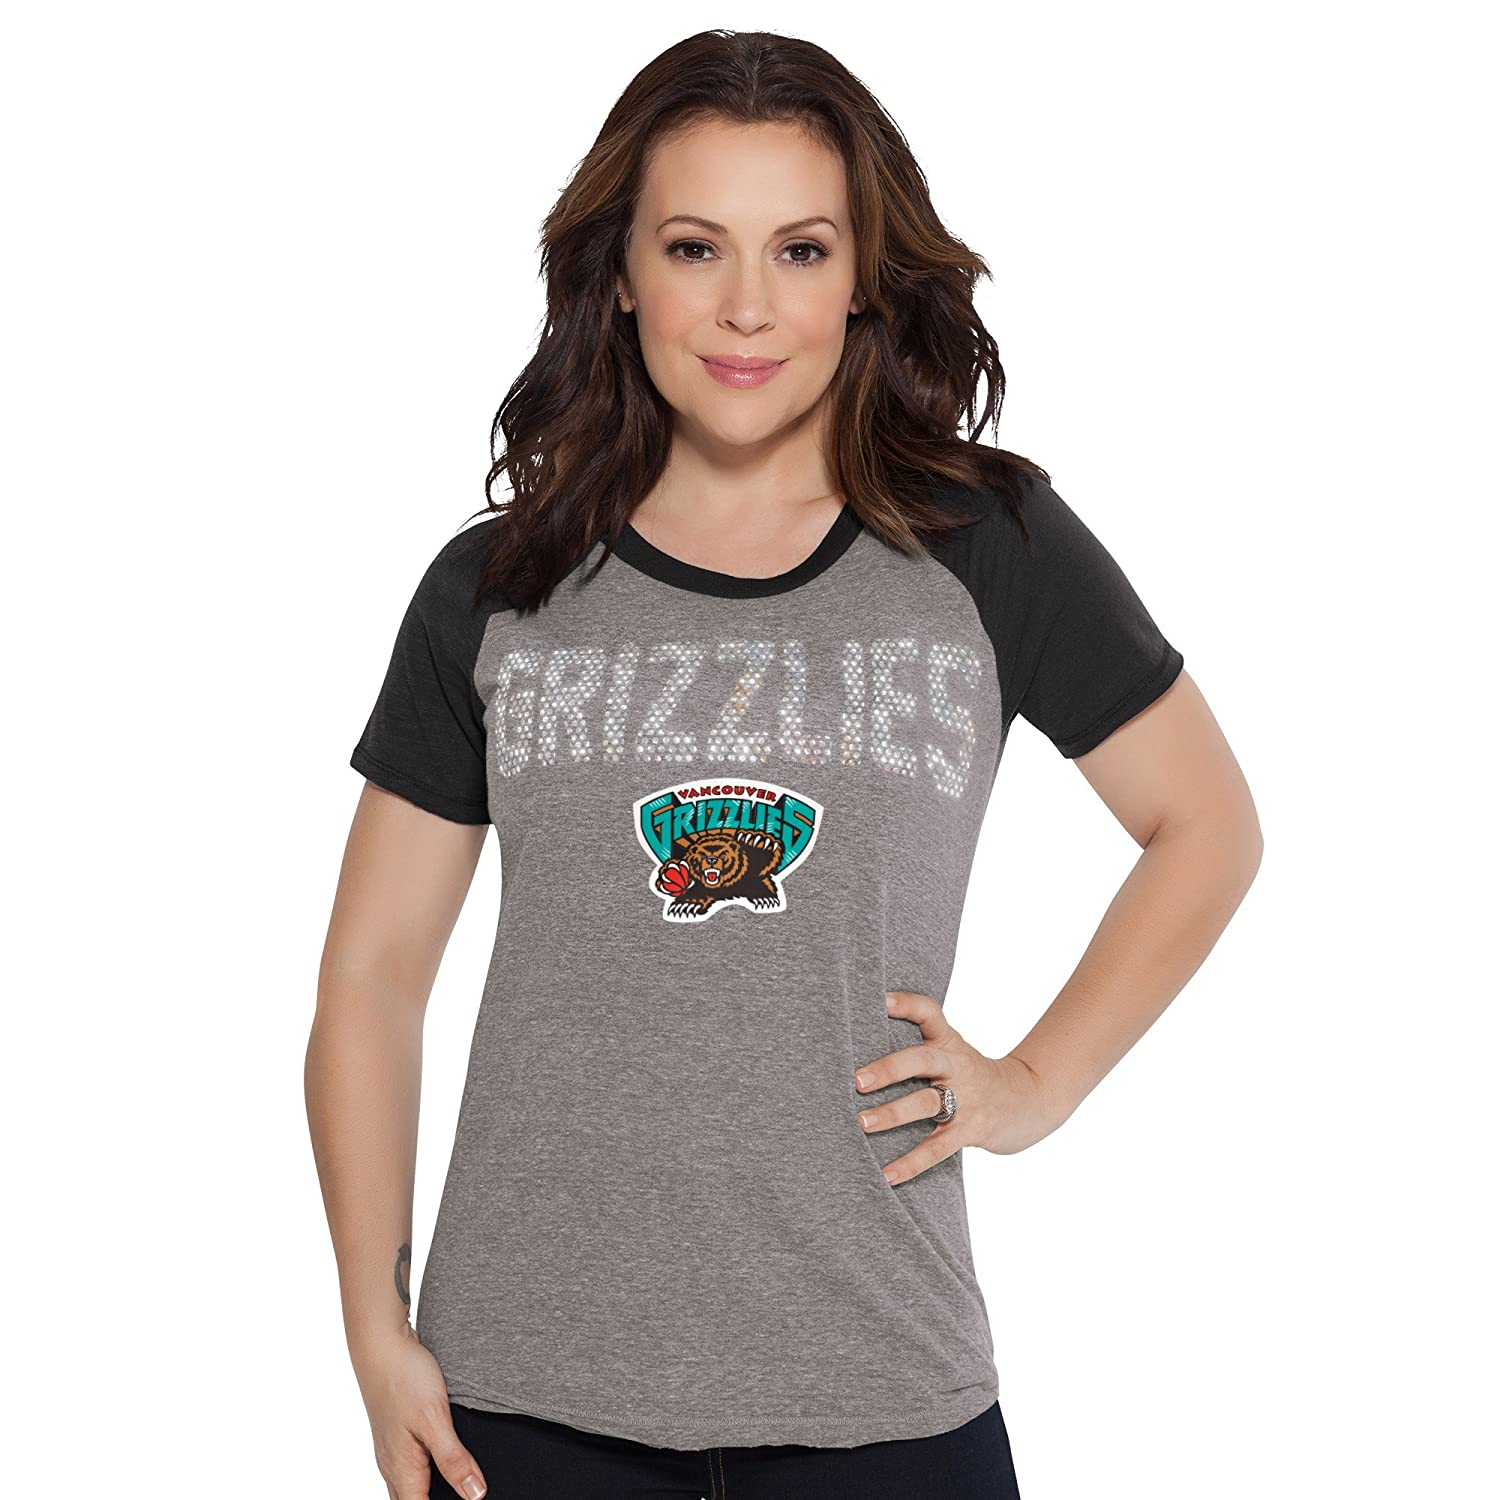 Heather Grey Small Touch by Alyssa Milano NBA Vancouver Grizzlies Conference Tee